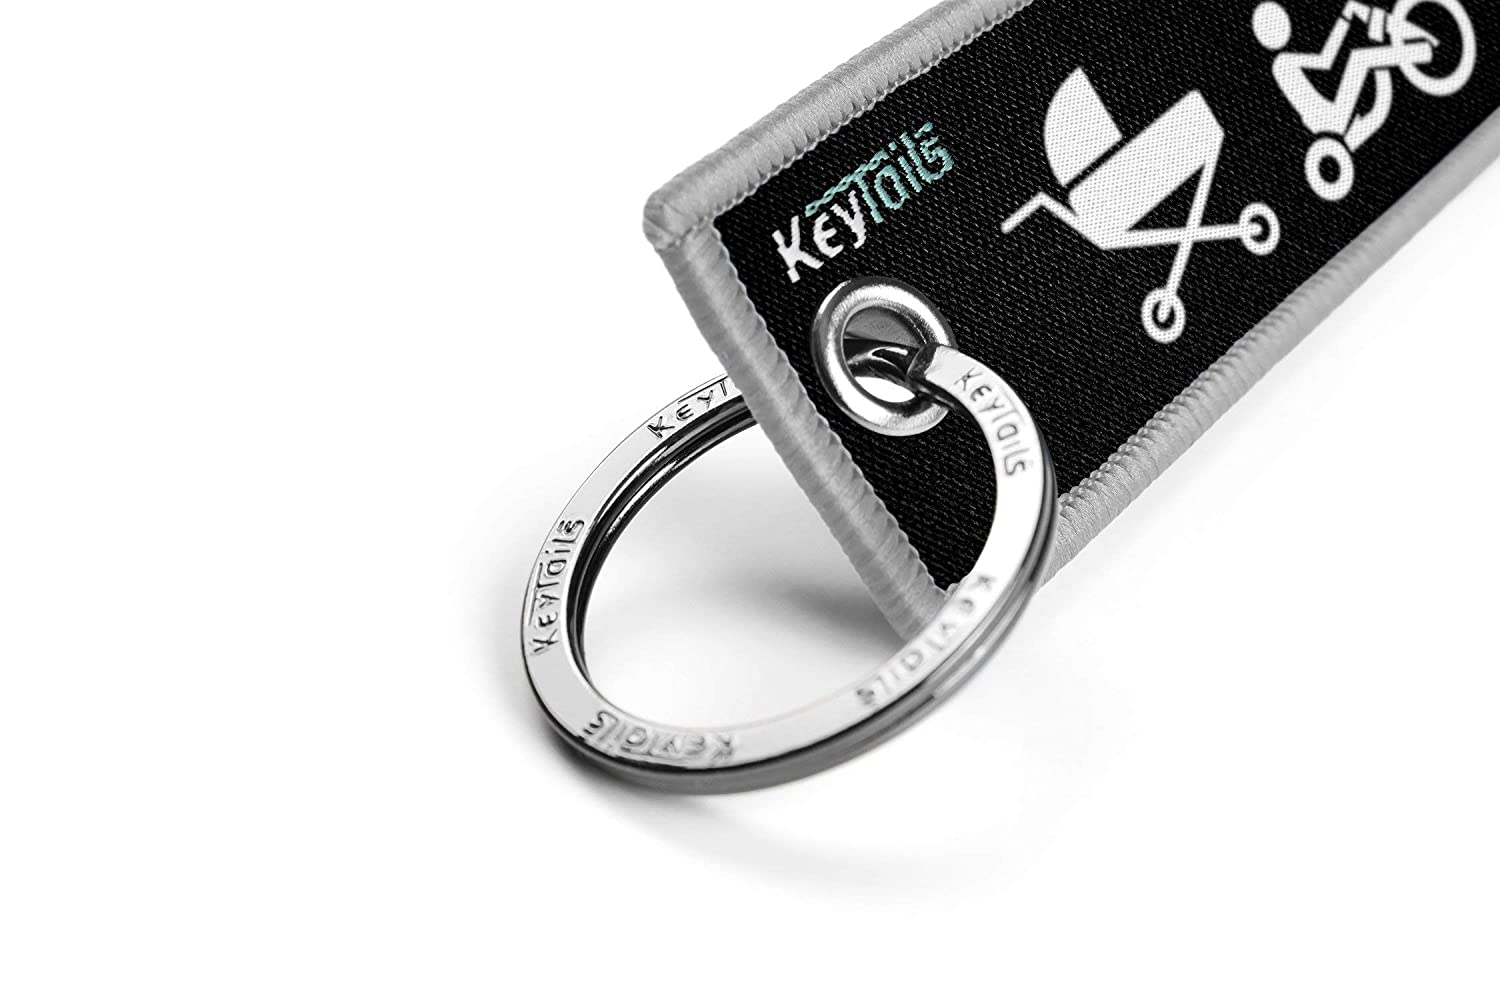 Moto Evolution Premium Quality Key Tag for Motorcycle Scooter Dirt Bike KEYTAILS Keychains